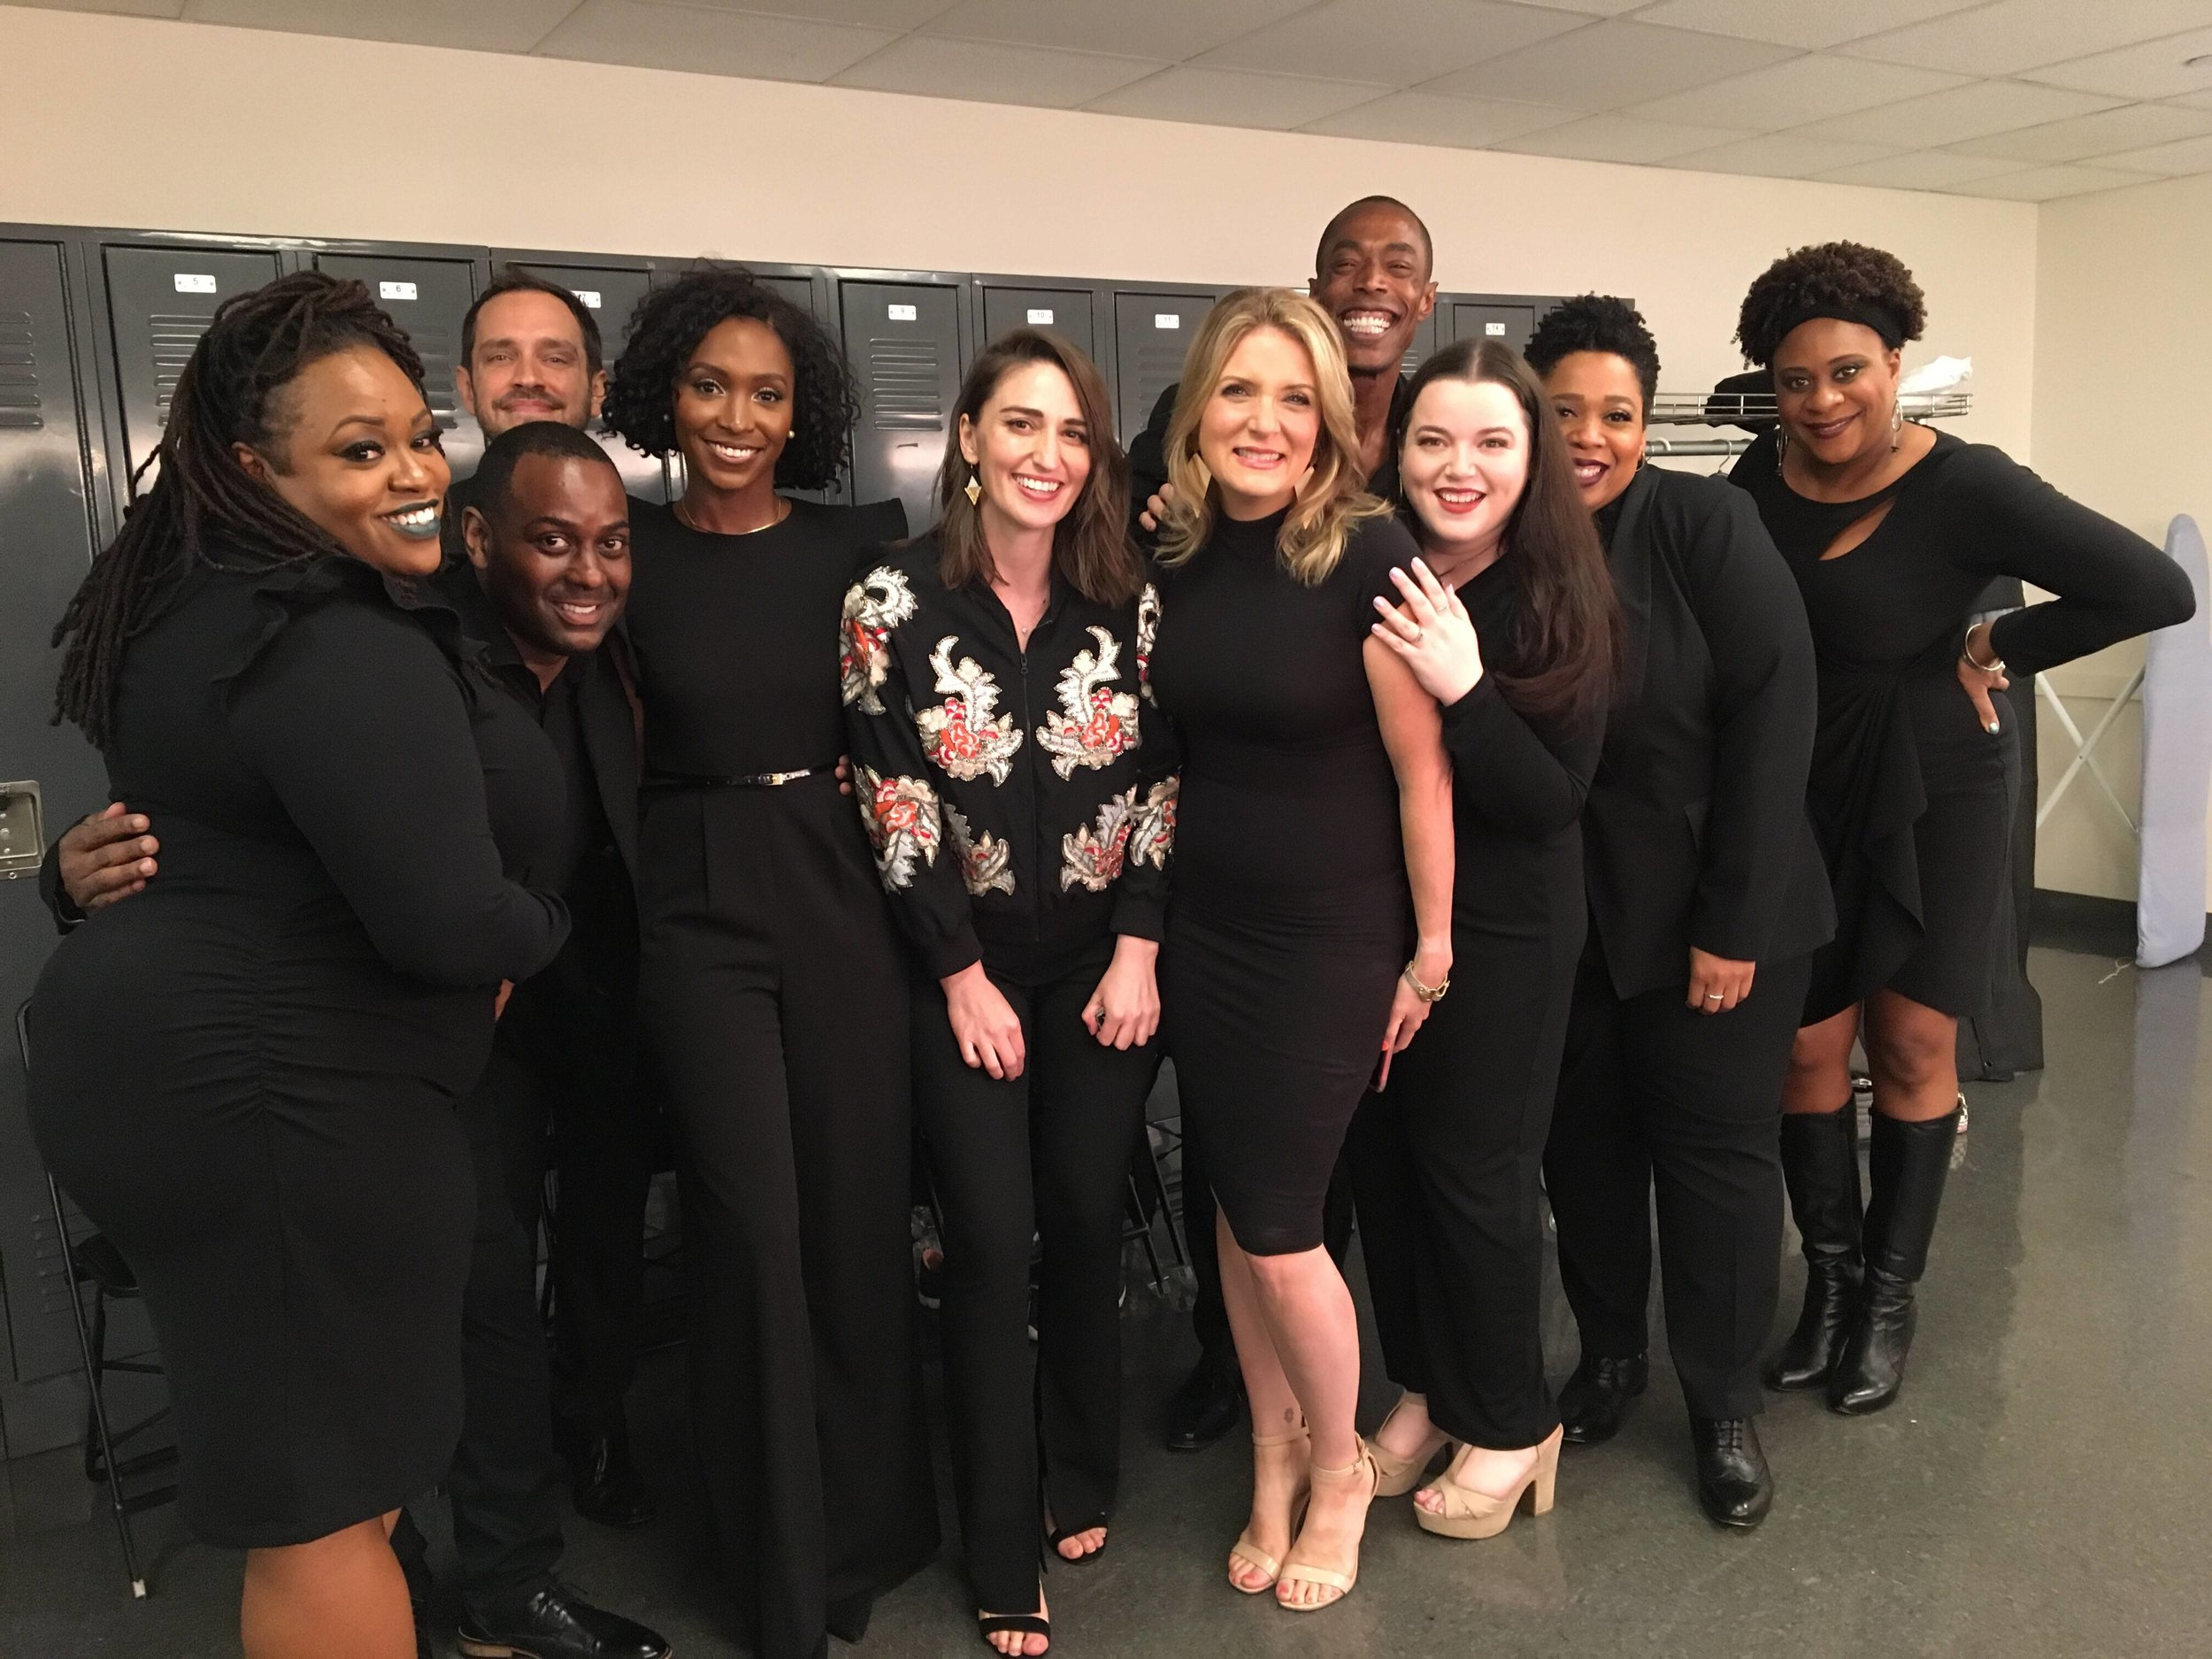 Backstage at Lincoln Center with Sara Bareilles